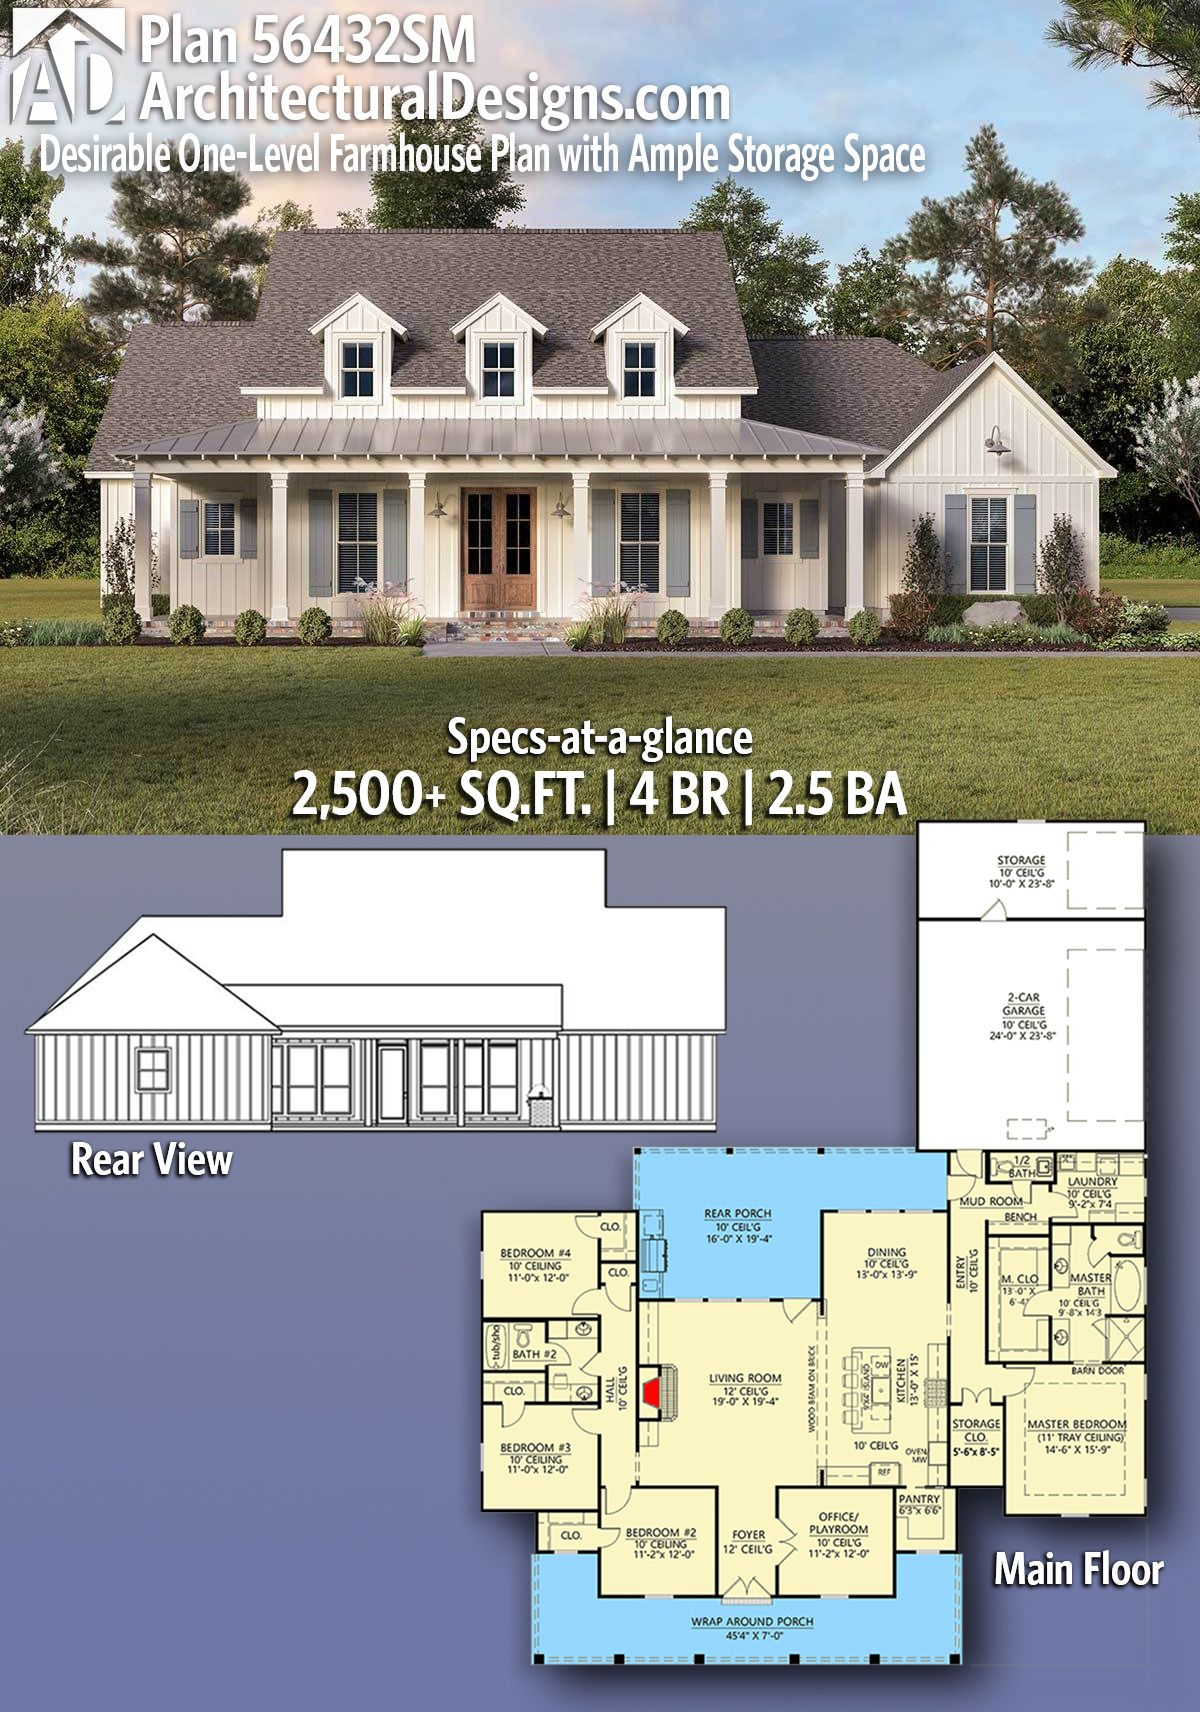 Photo of Plan 56432SM: Desirable One-Level Farmhouse Plan with Ample Storage Space